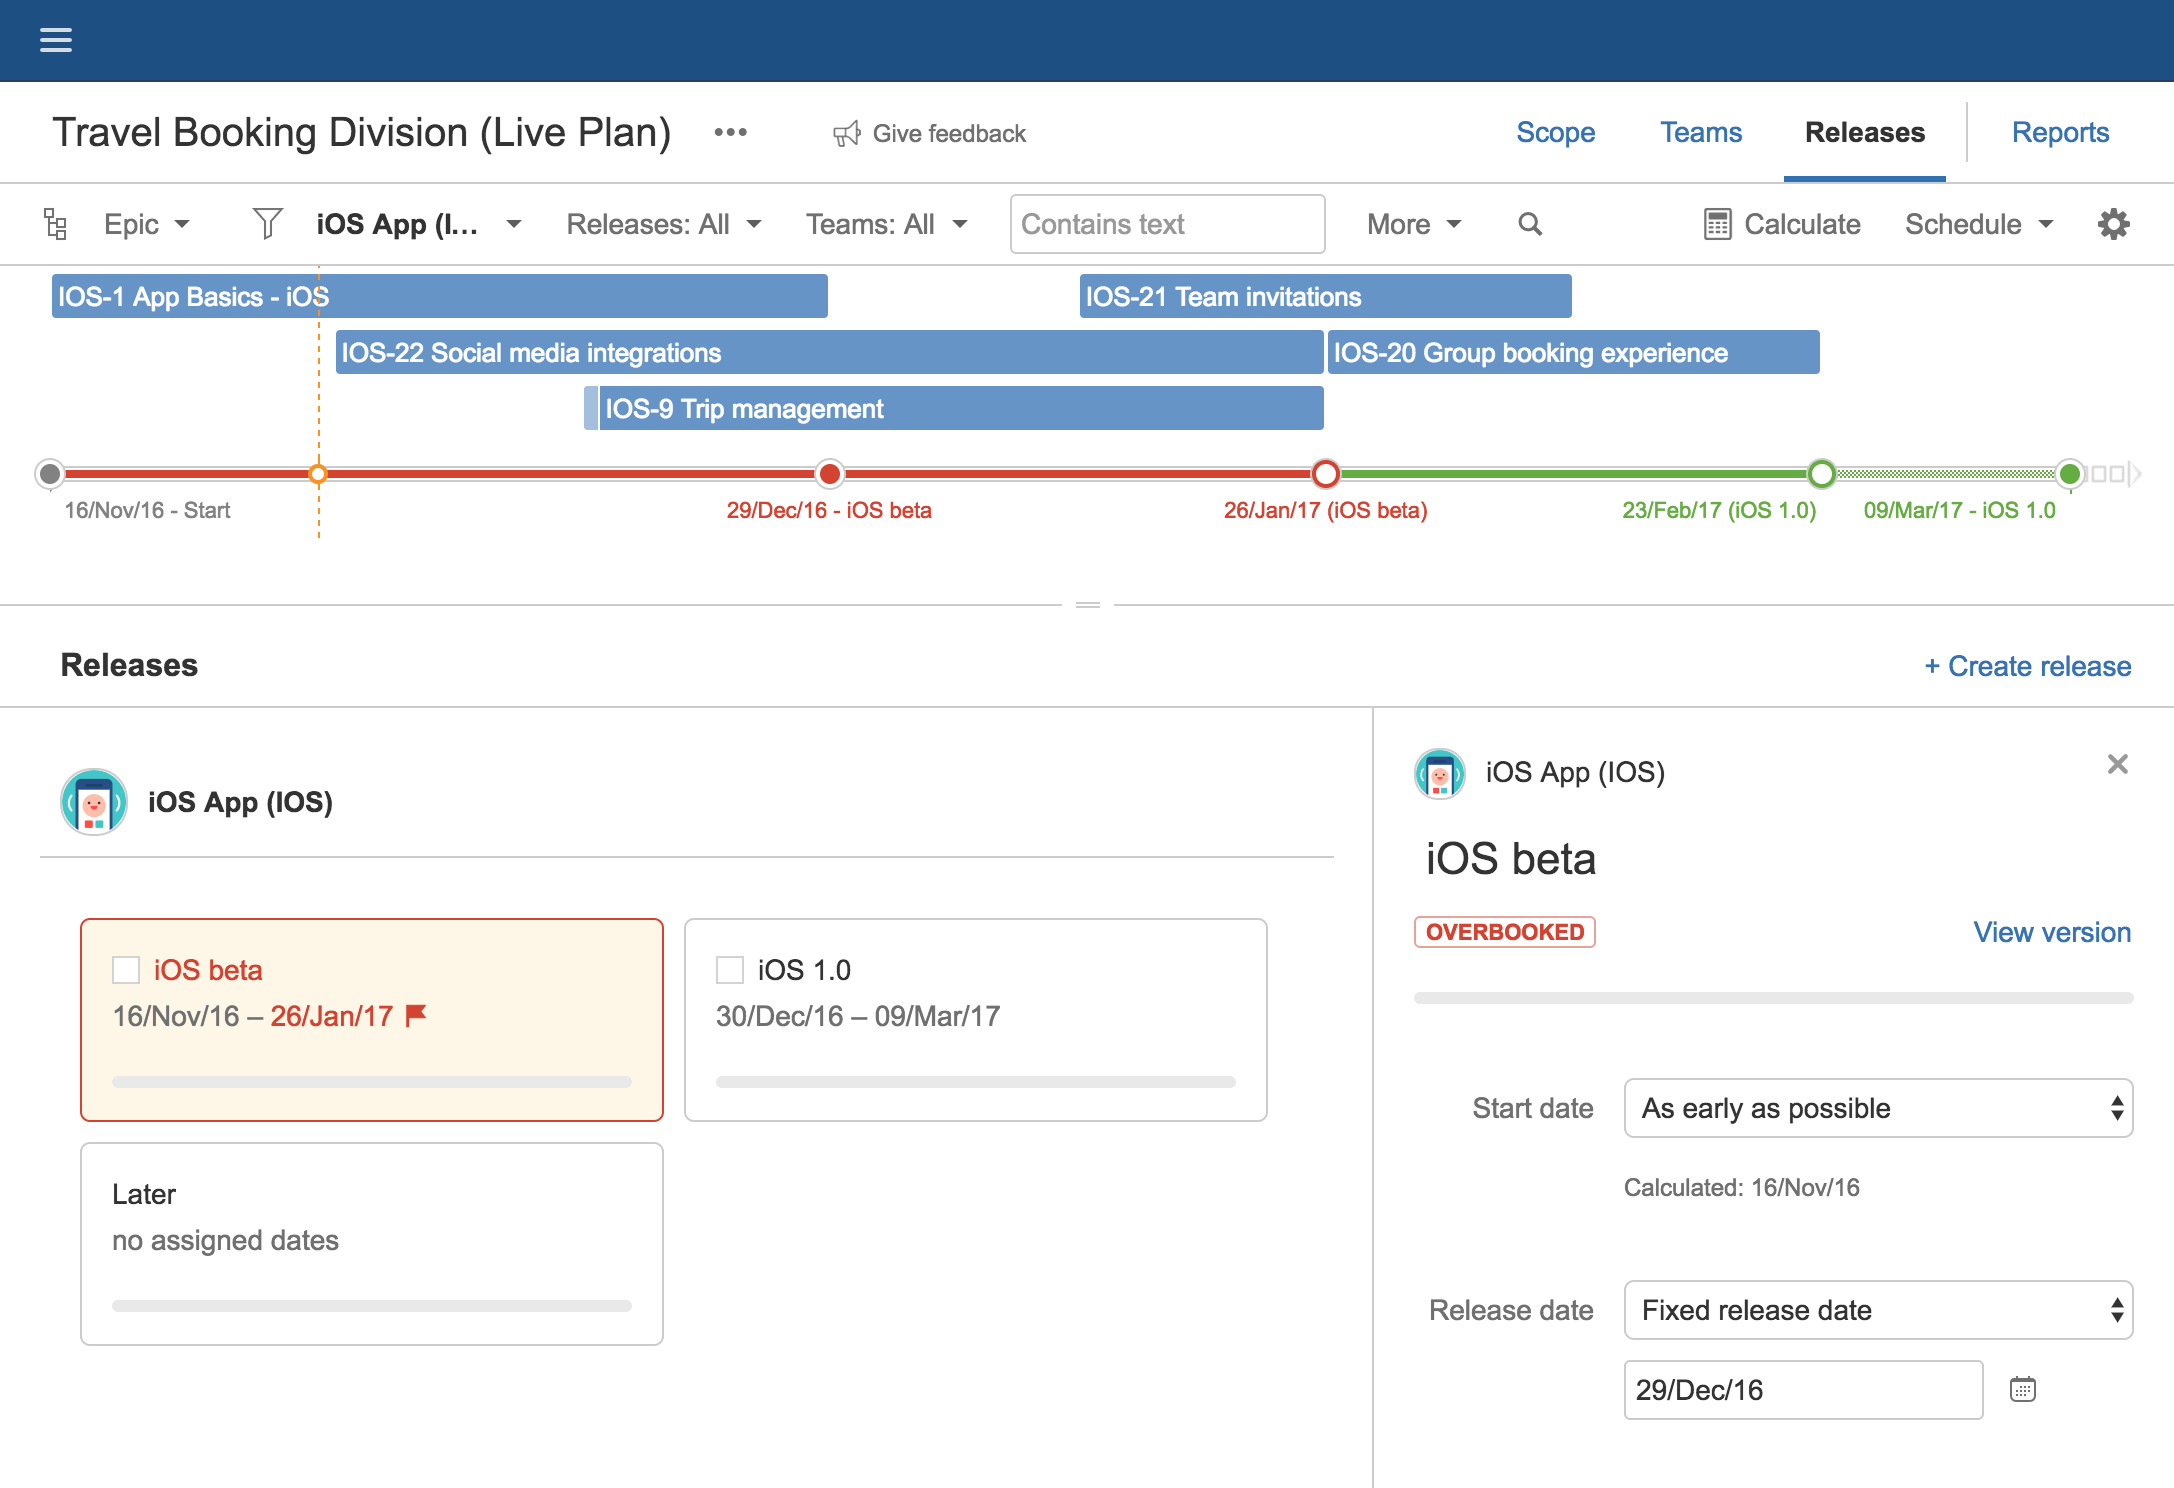 Changing release scope in Portfolio for Jira